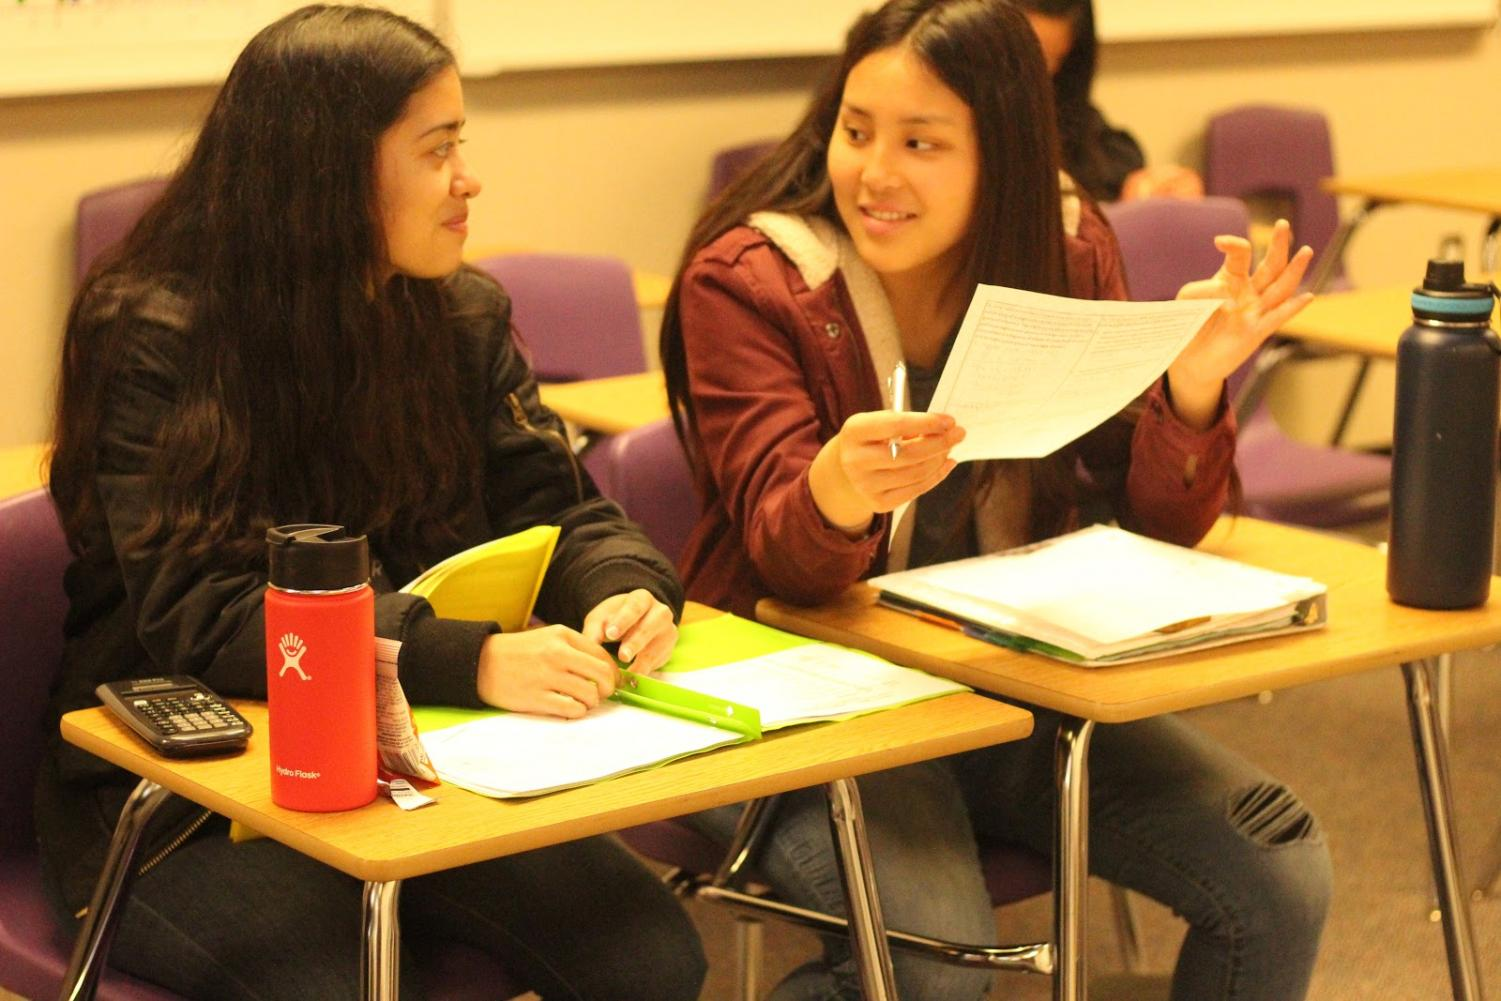 Isabella Garrett, left, and Berince Tang work together on math homework.